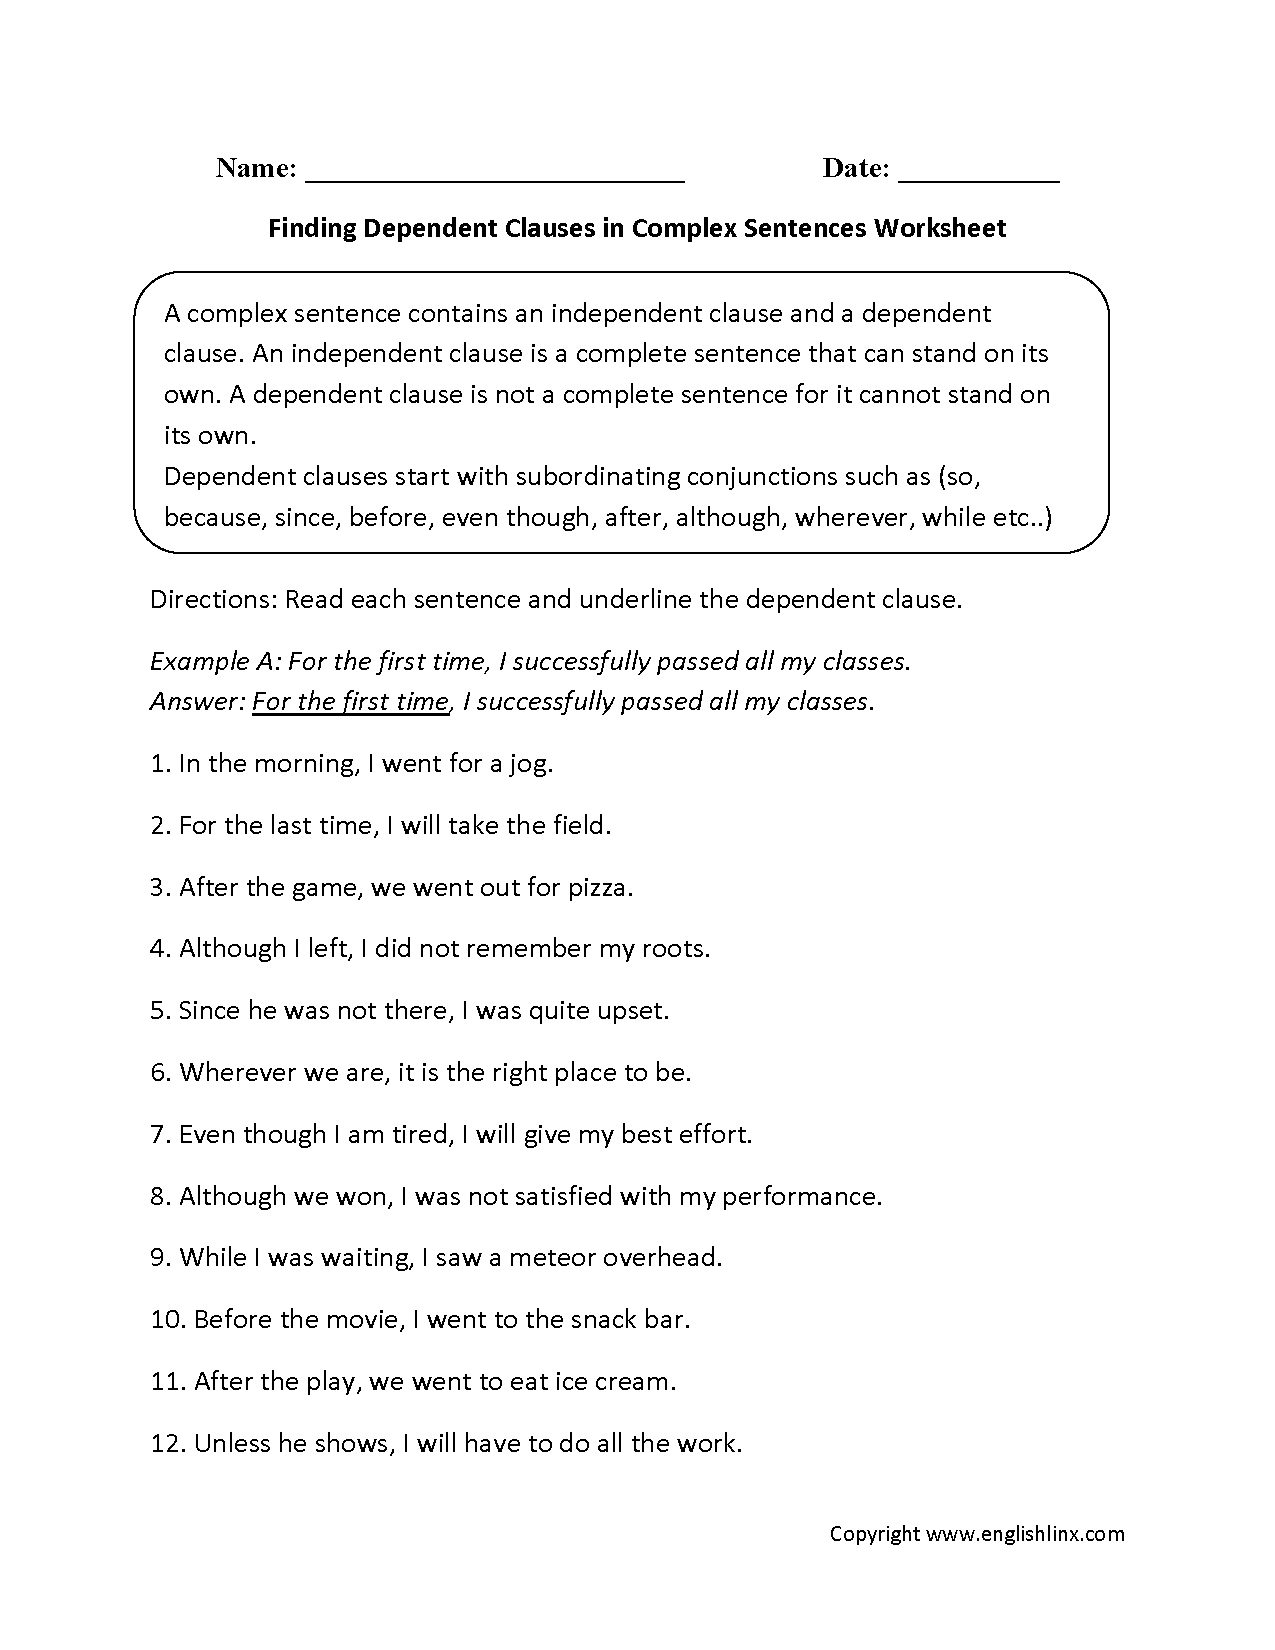 Finding Dependent Clauses Complex Sentences Worksheets | Art Things - Free Printable Simple Sentences Worksheets